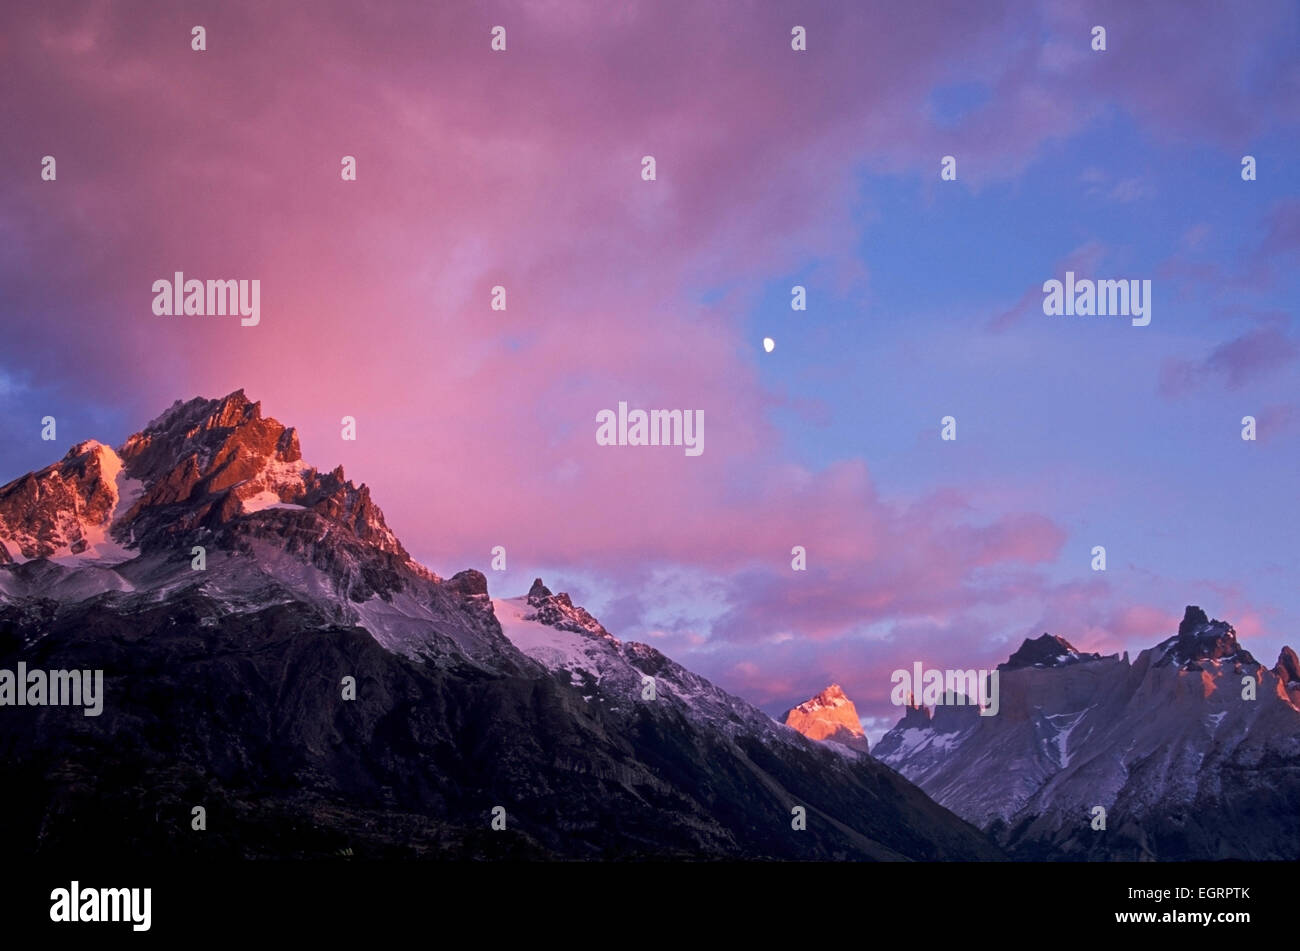 Moon over Bariloche Peak (L, 8,530 ft.), Torres del Paine National Park, Patagonia, Chile - Stock Image